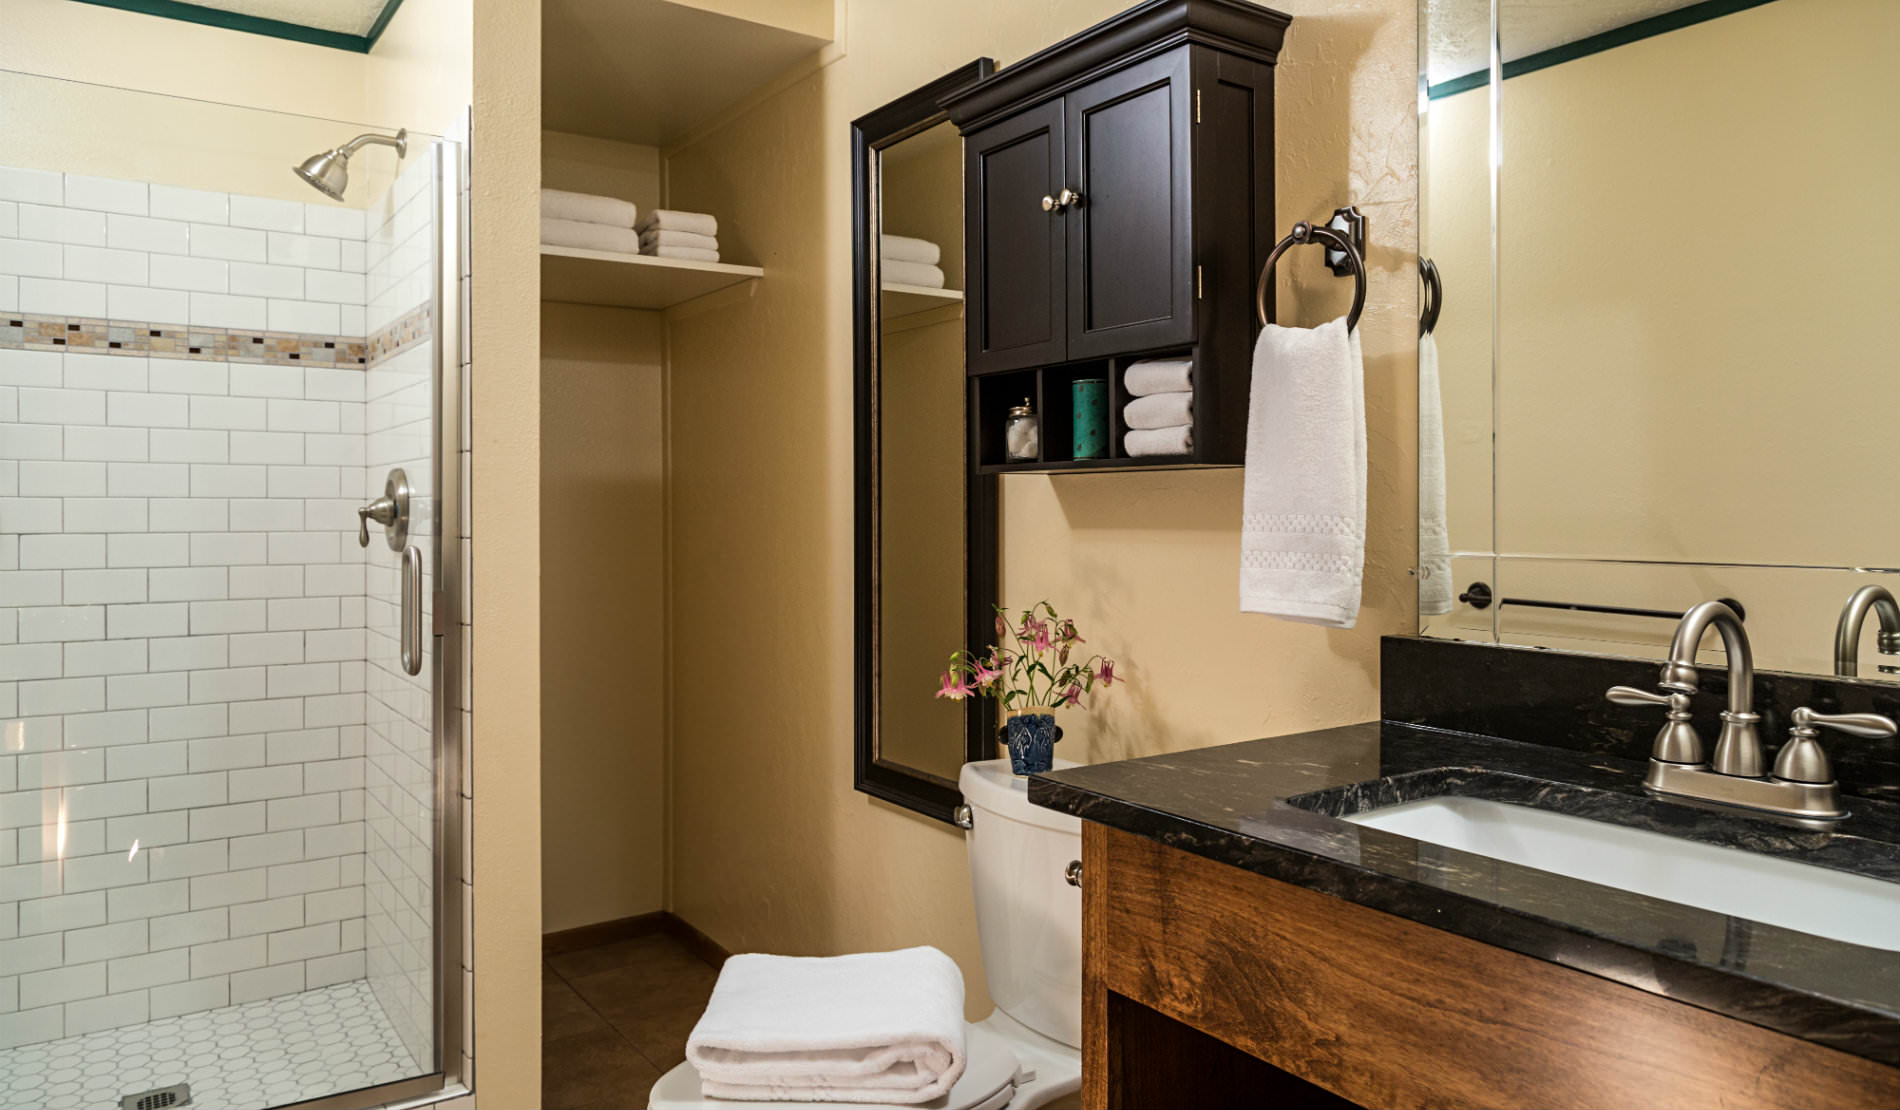 White tiled shower with glass door, wooden vanity with black counter, beige walls.